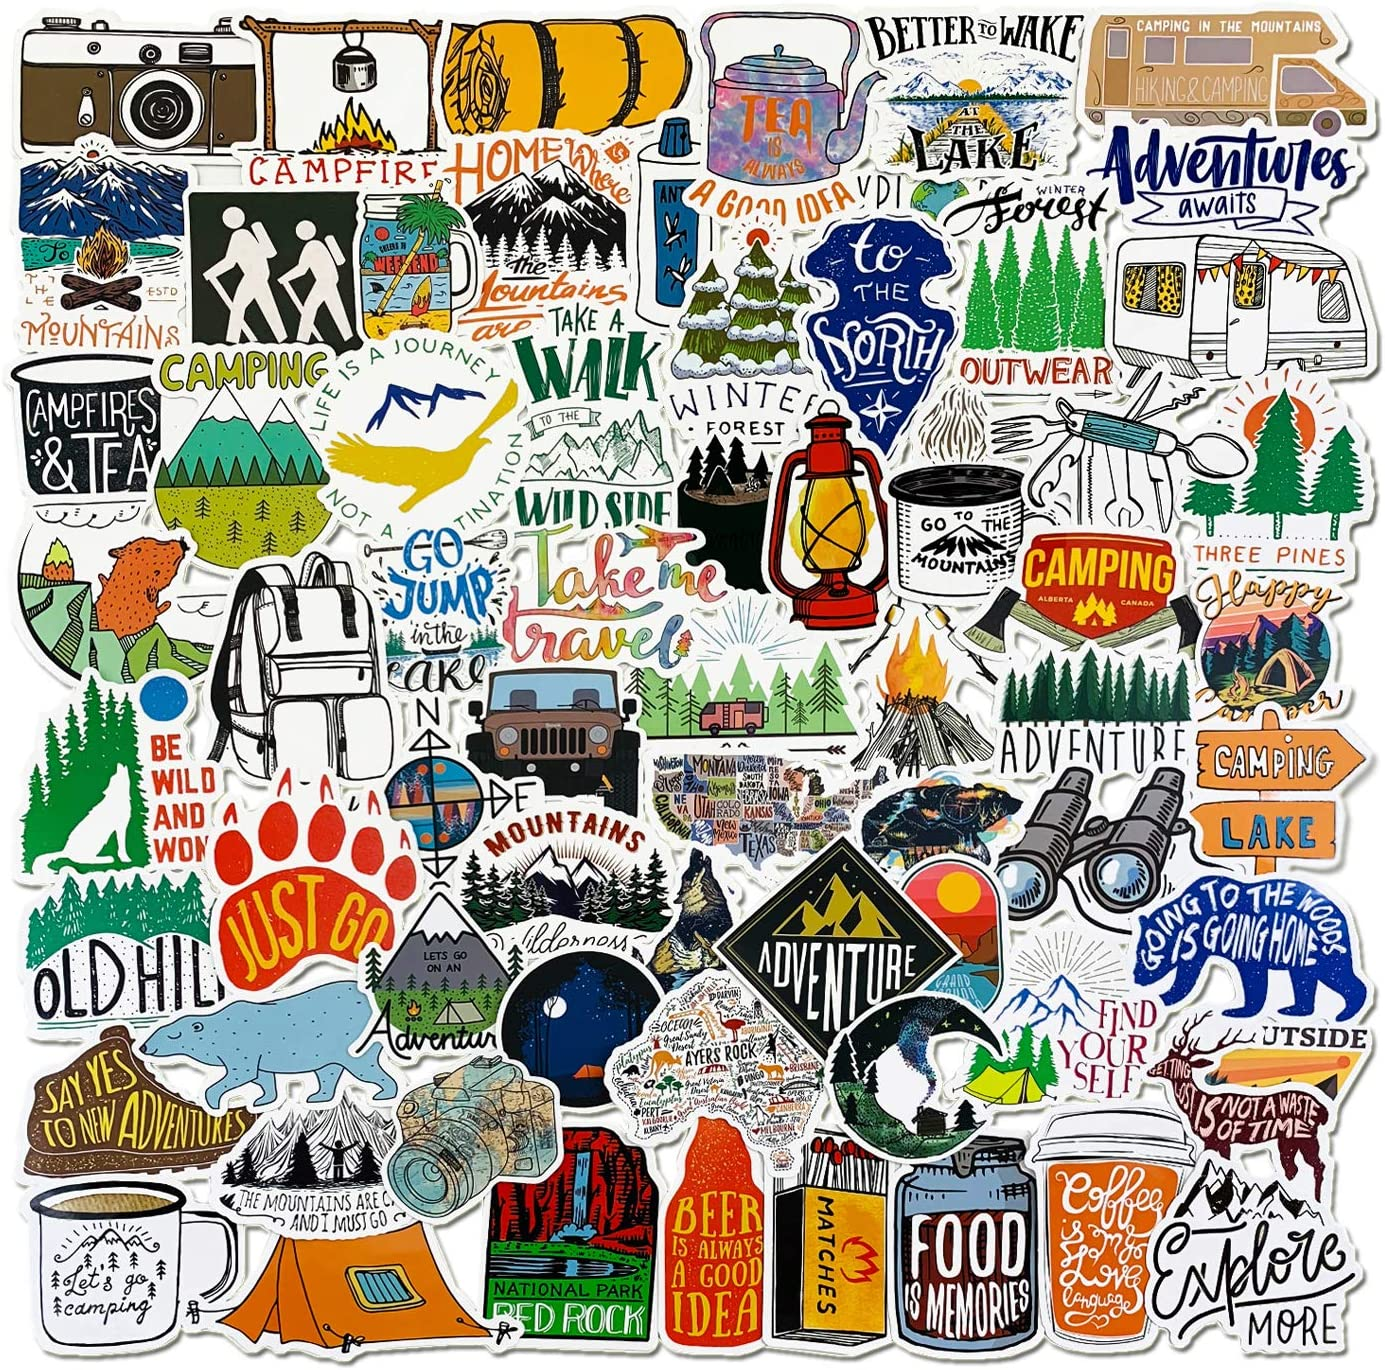 Mesa Verde National Park Sticker Vinyl Shield Wilderness Nature Outdoors Hiking Camping Travel Adventure Gift Stickers Waterproof RV Trailer Car Luggage Decal